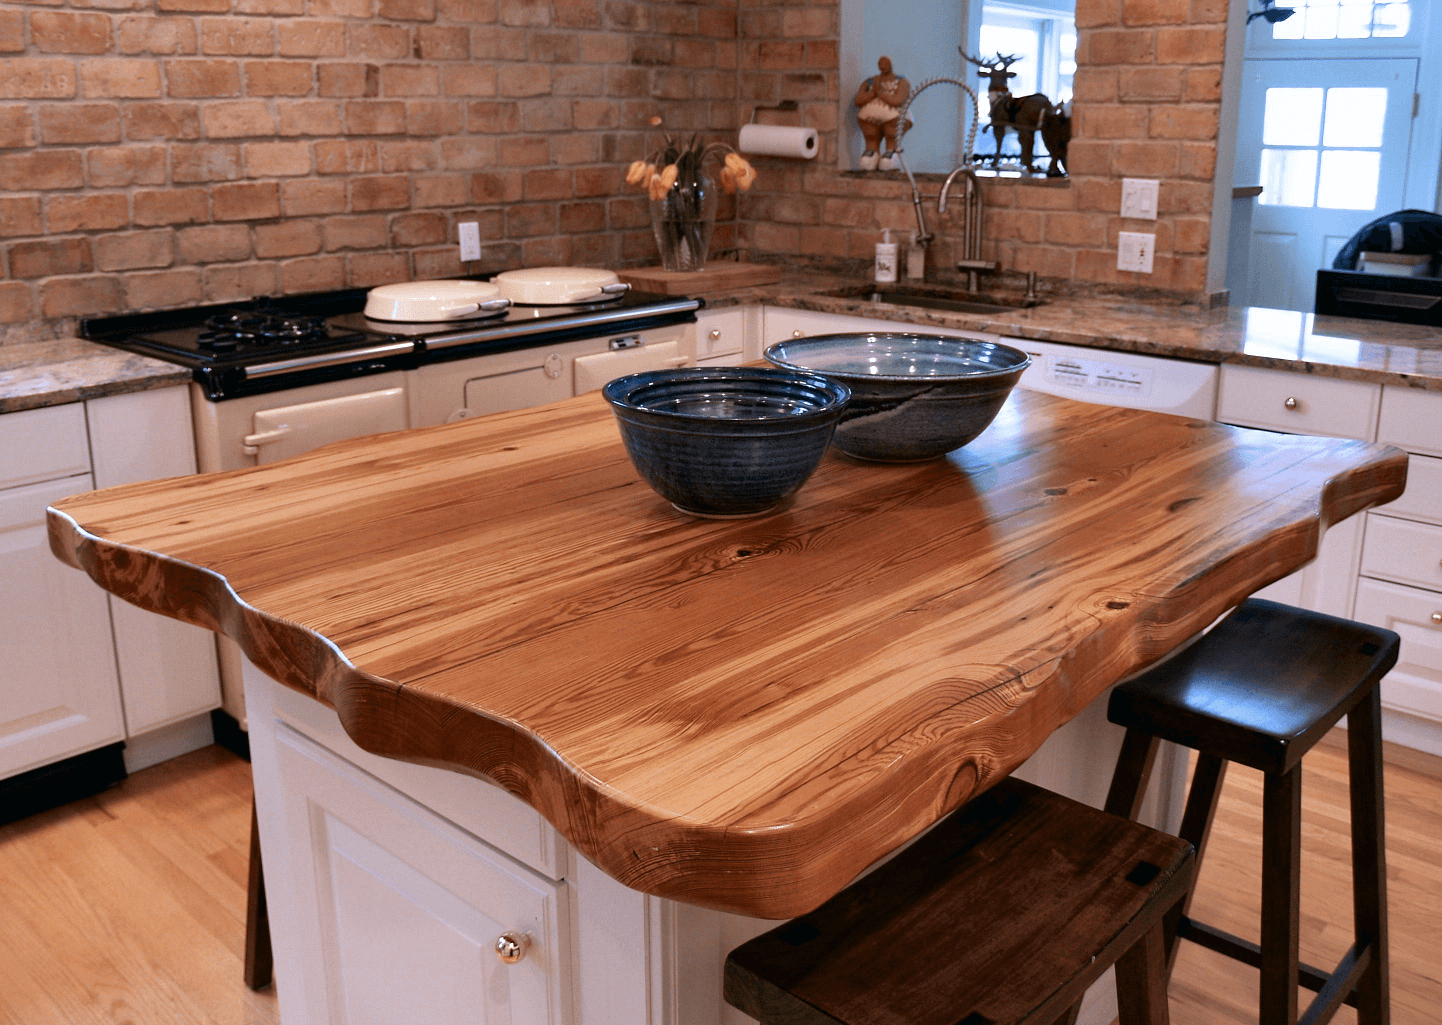 Best Countertop For Small Kitchen Reclaimed Wood Countertop